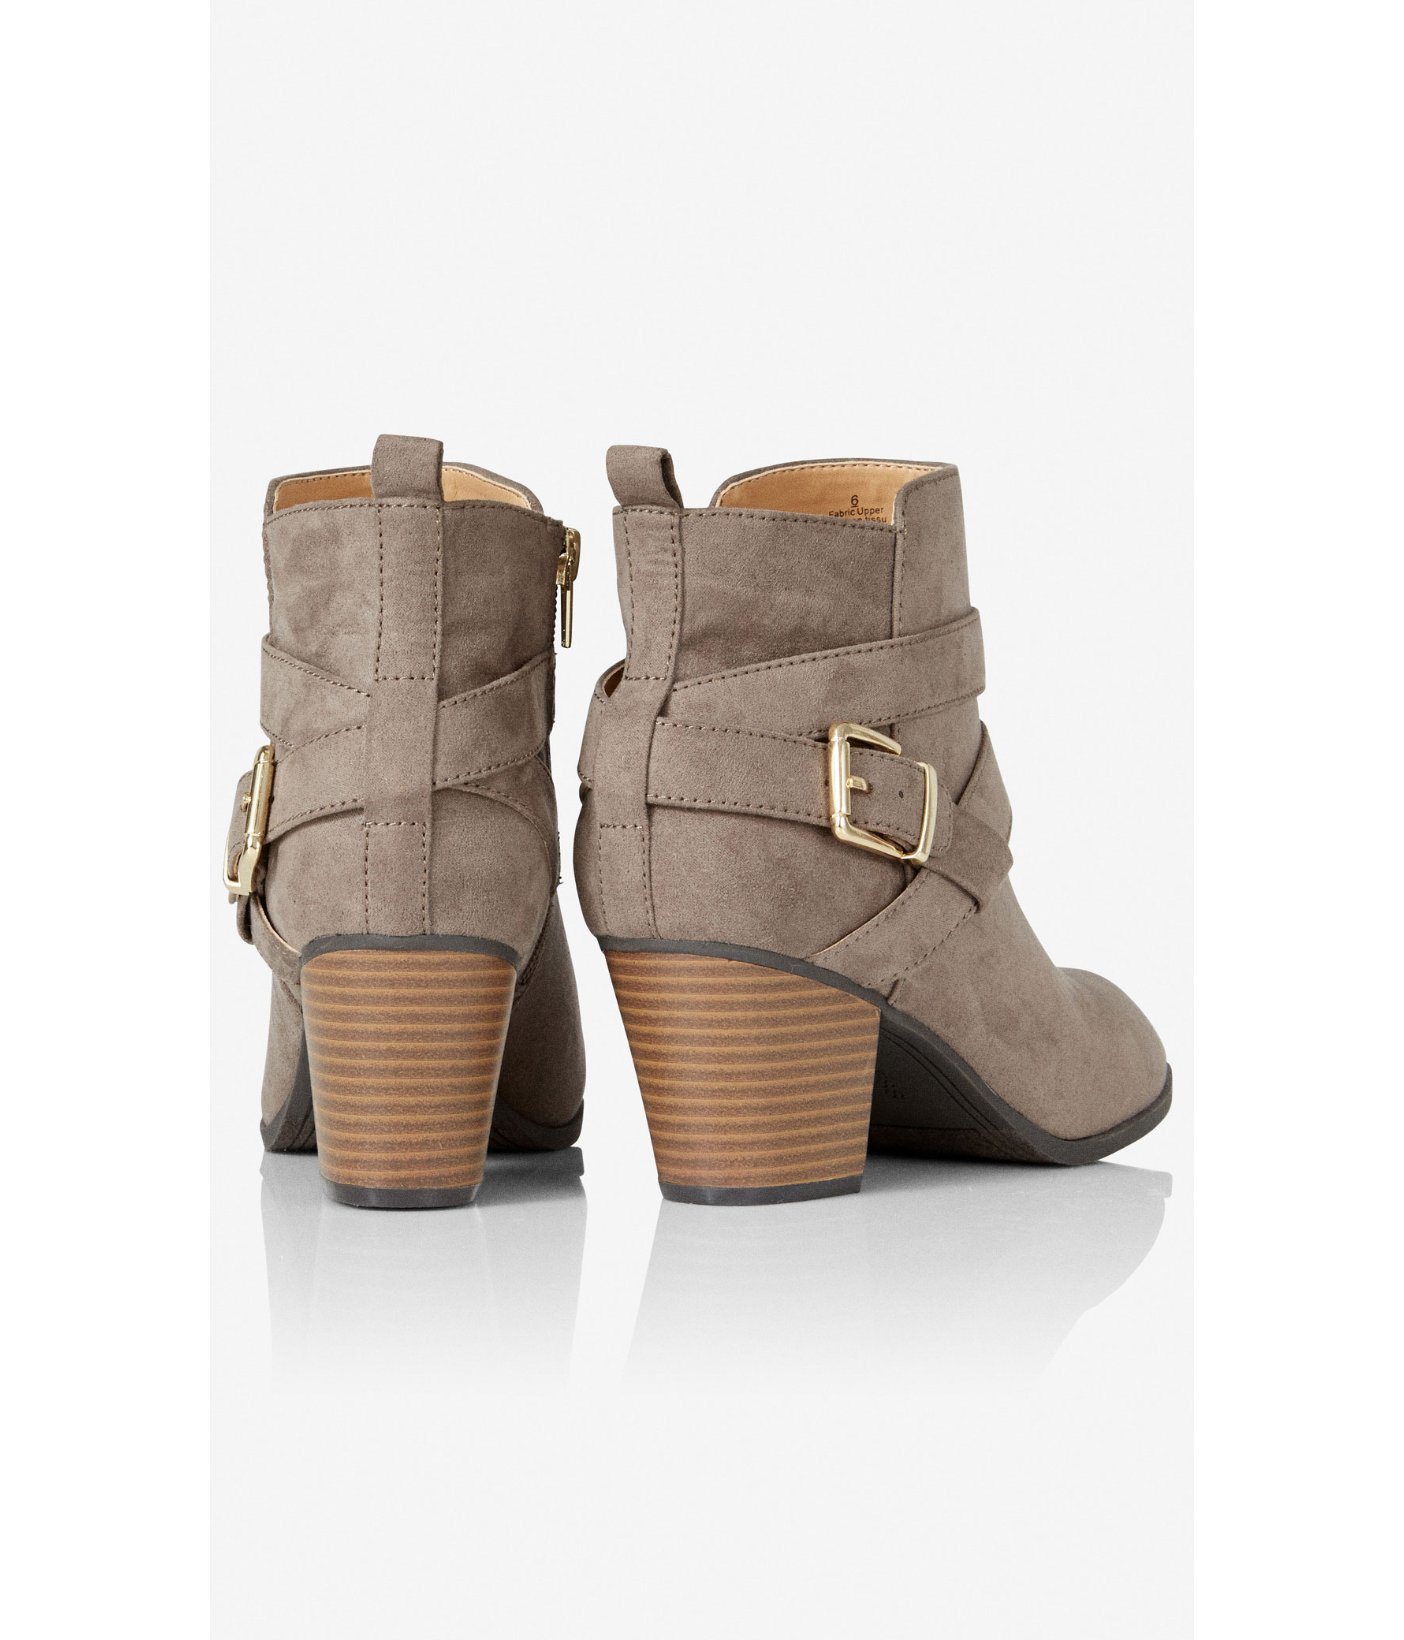 Express Zip-up Buckle Ankle Boot in Grey